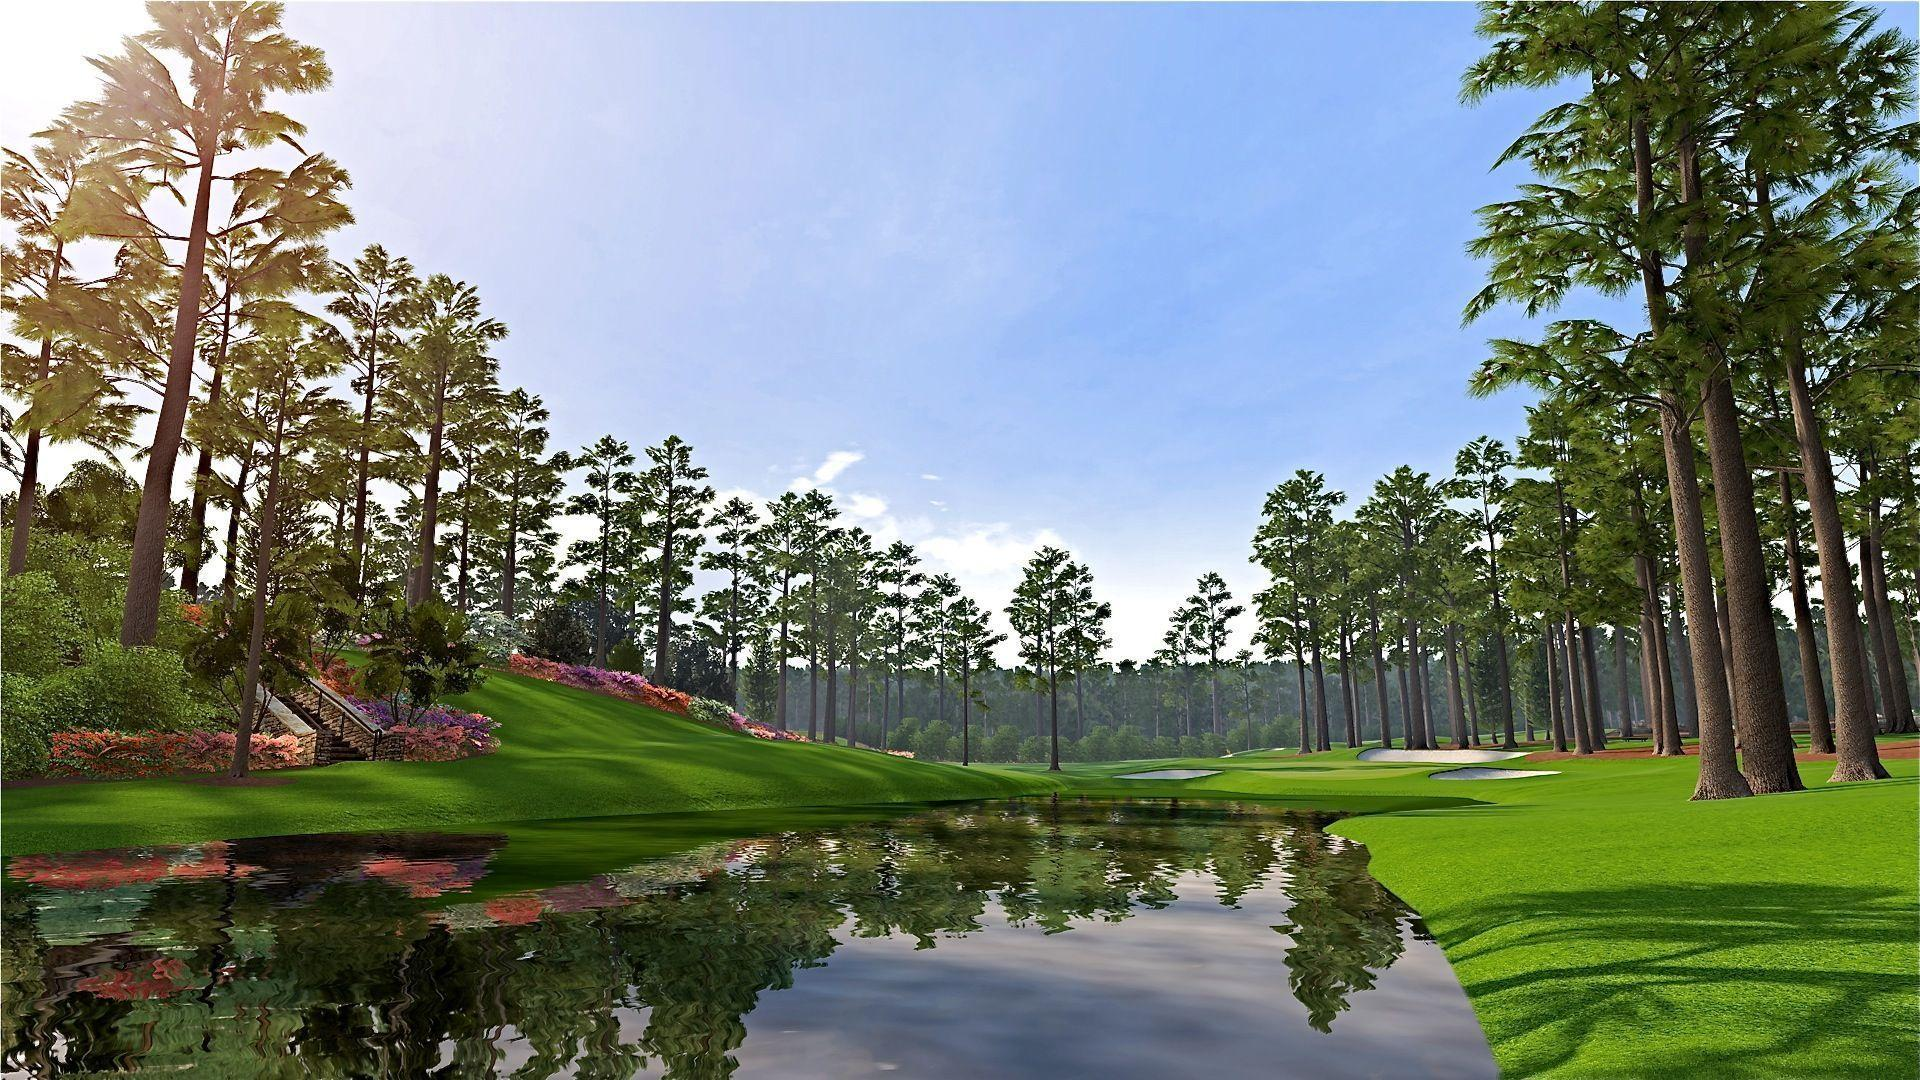 augusta national course map with Augusta National Wallpaper on Augusta National Wallpaper as well 498871739 in addition Augusta National Golf Club moreover Augusta National Masters Most Luxurious Media Center besides Want To Buy A Building Lot At Augusta National.